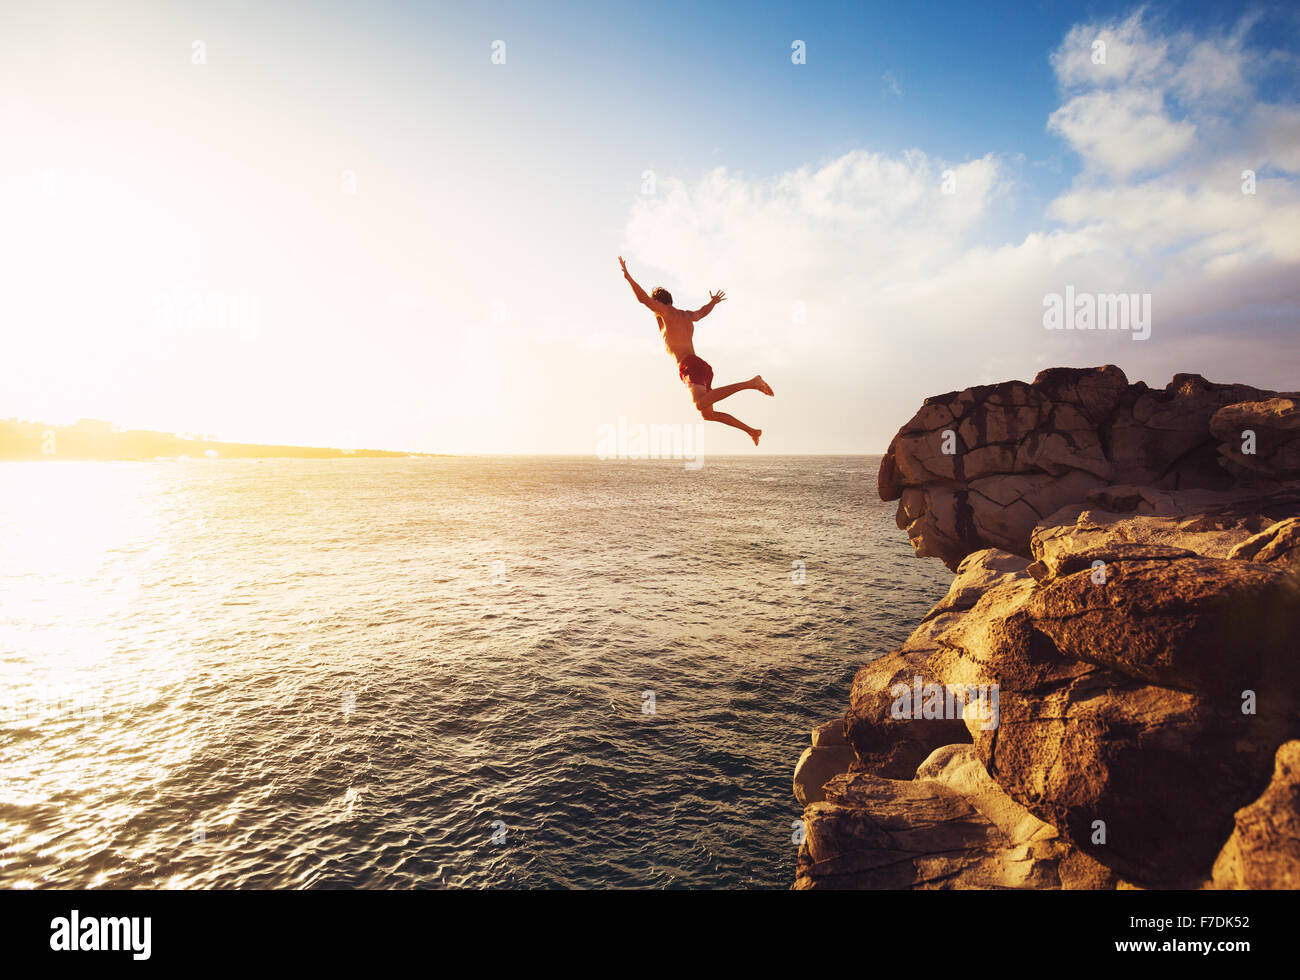 Cliff Jumping into the Ocean at Sunset, Summer Fun Lifestyle - Stock Image